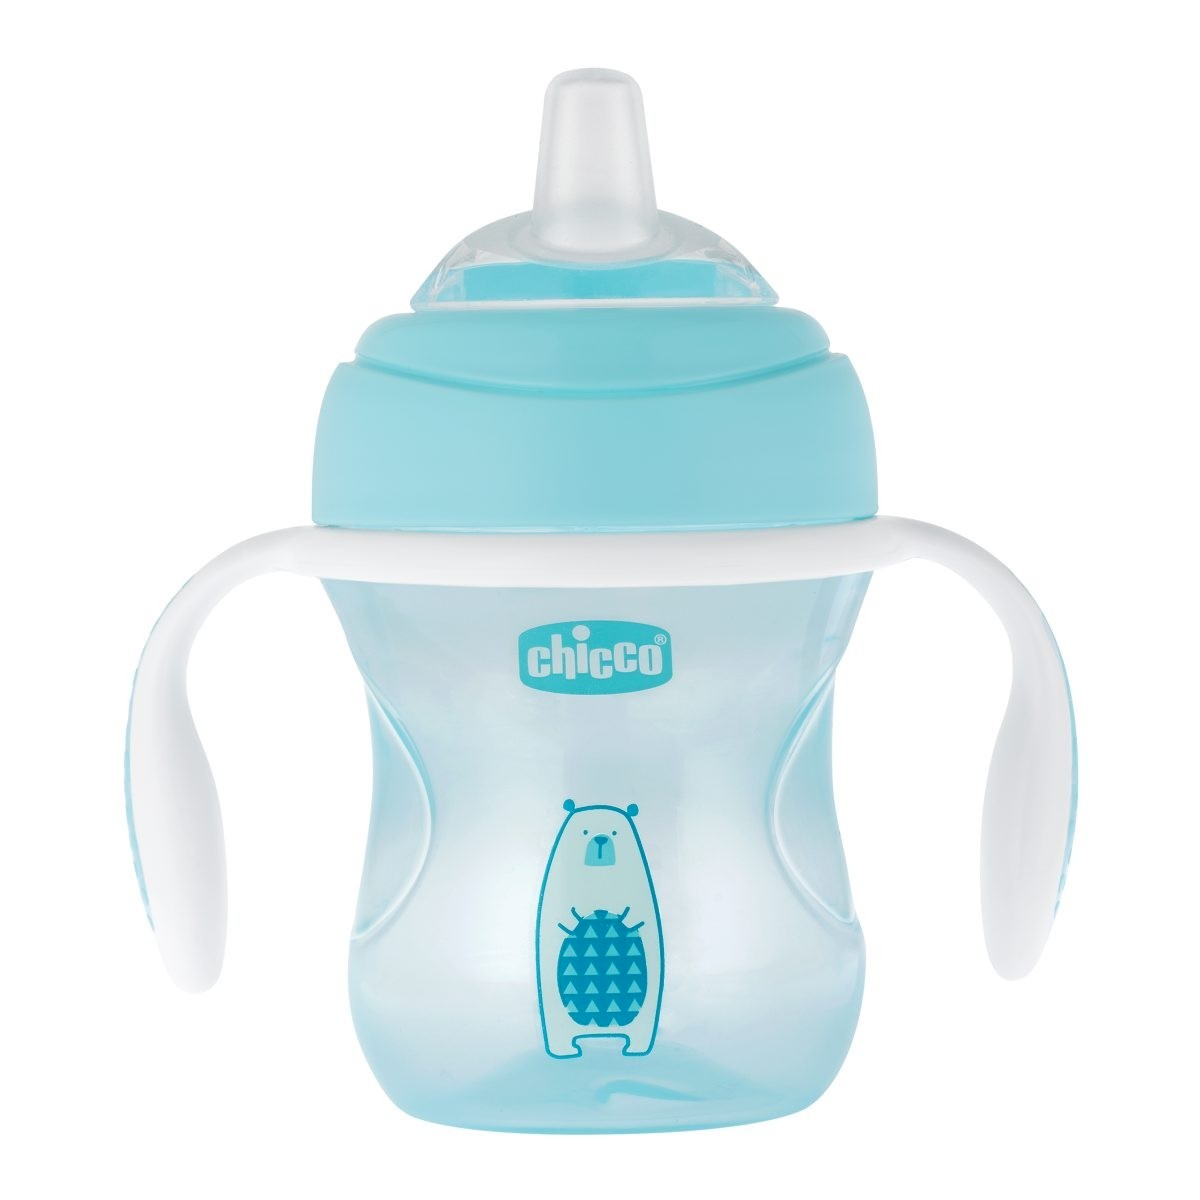 Chicco Transition Schnabeltasse 4M+ Blau